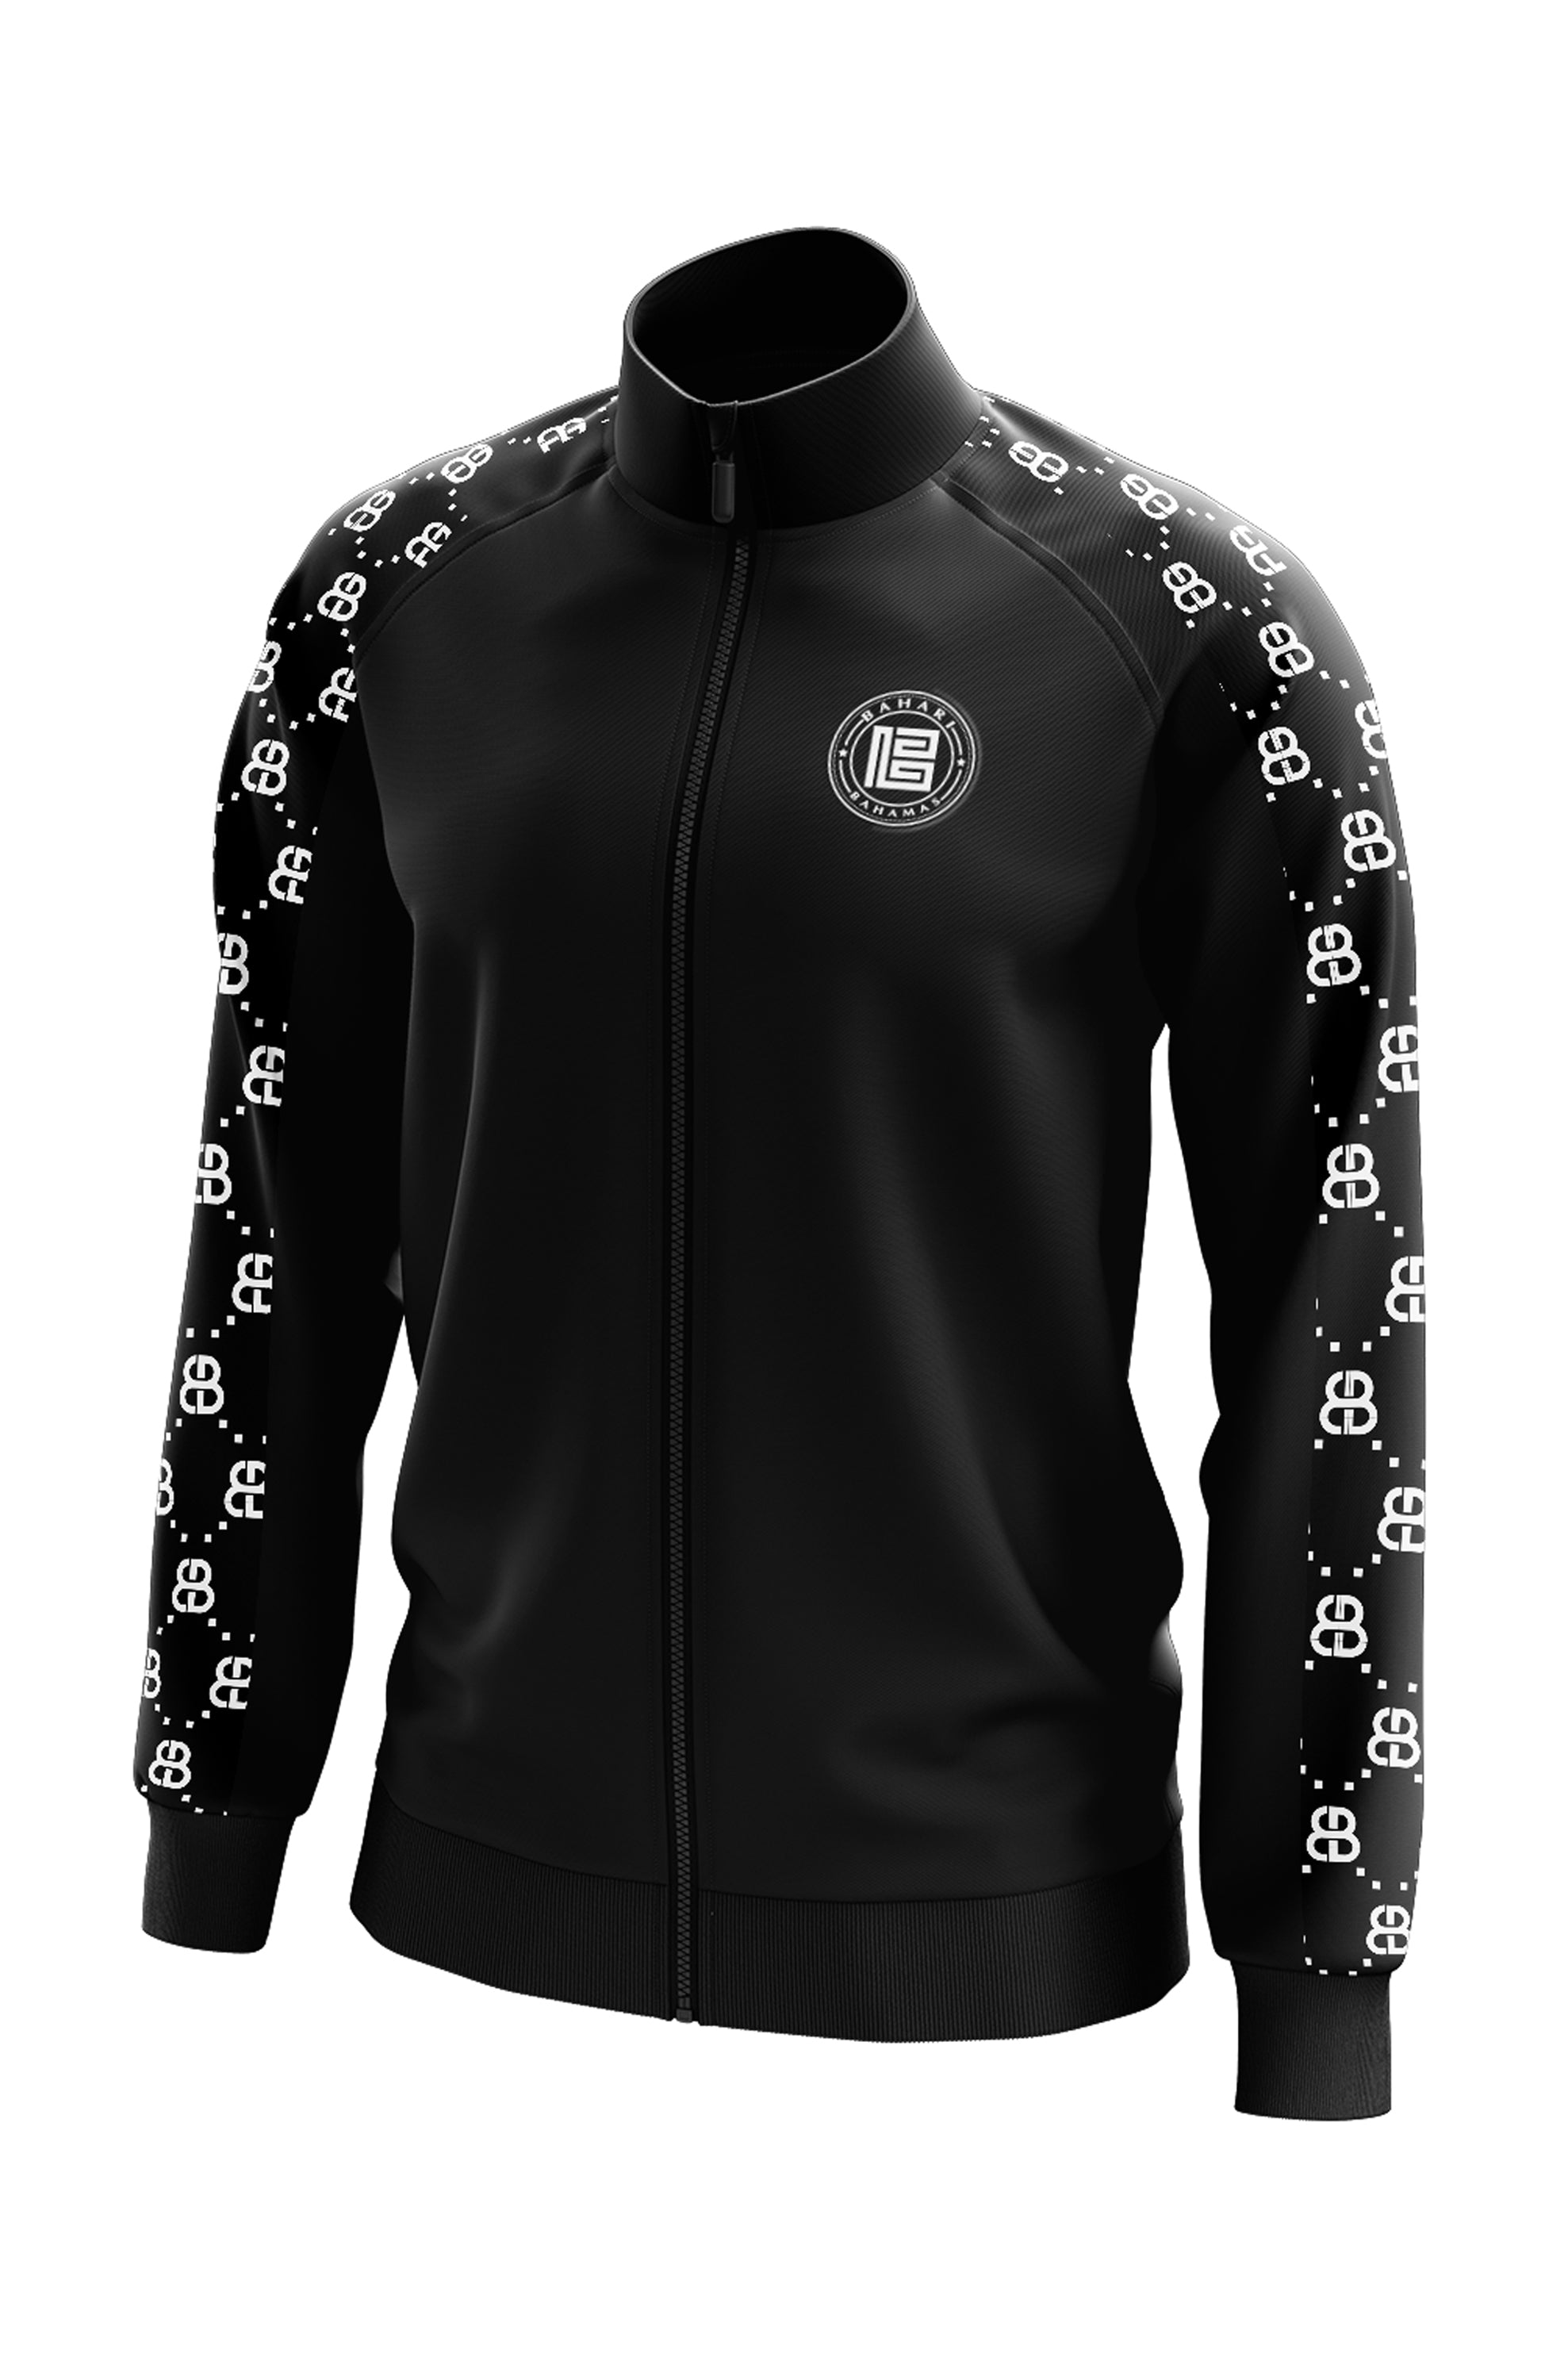 THE MONOGRAM TRACK JACKET- BLACK